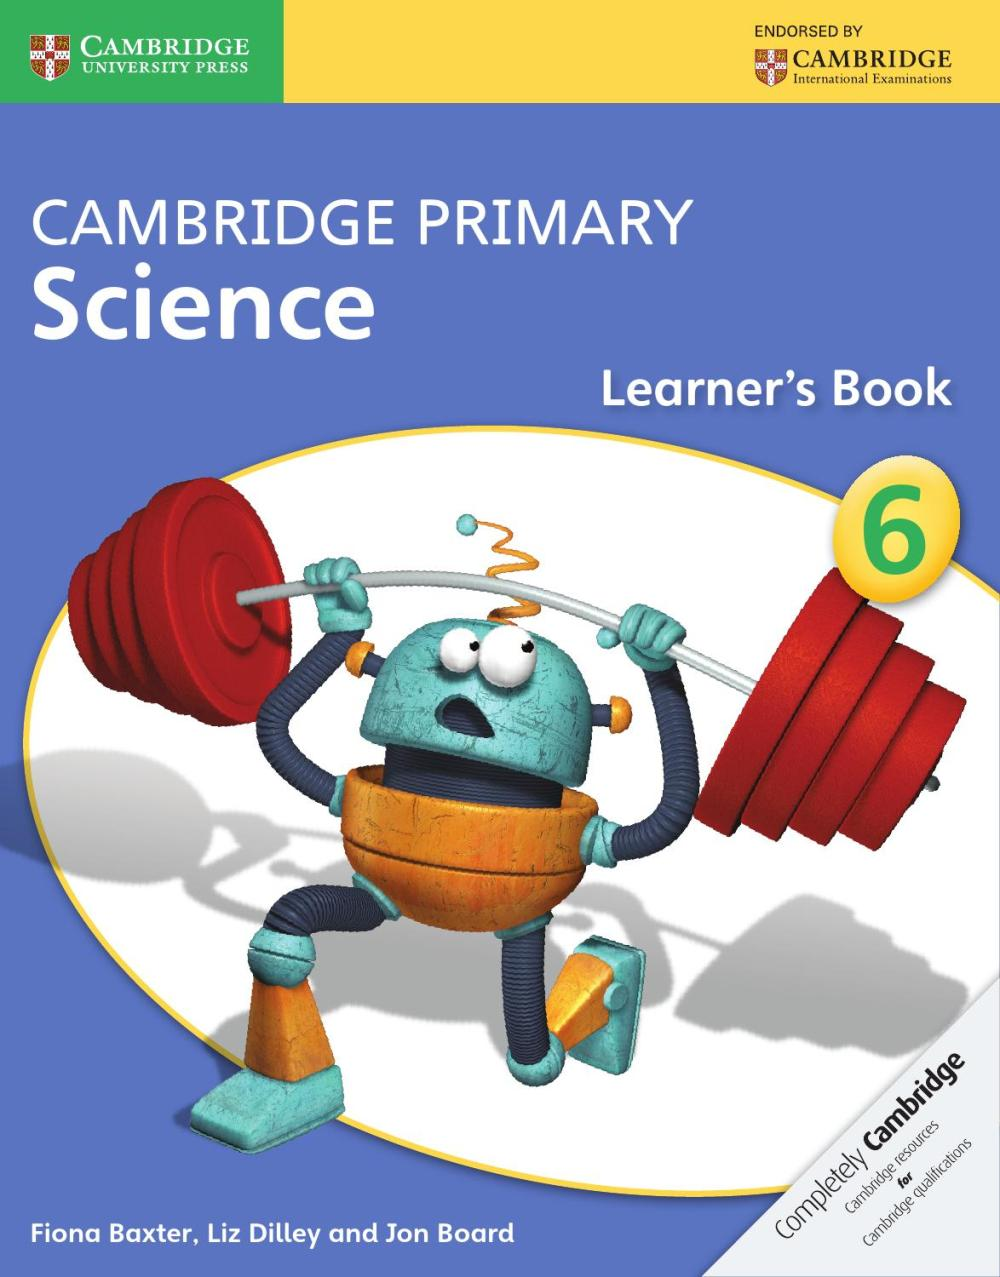 medium resolution of Cambridge Primary Science Learner's Book 6 by Cambridge University Press  Education - issuu